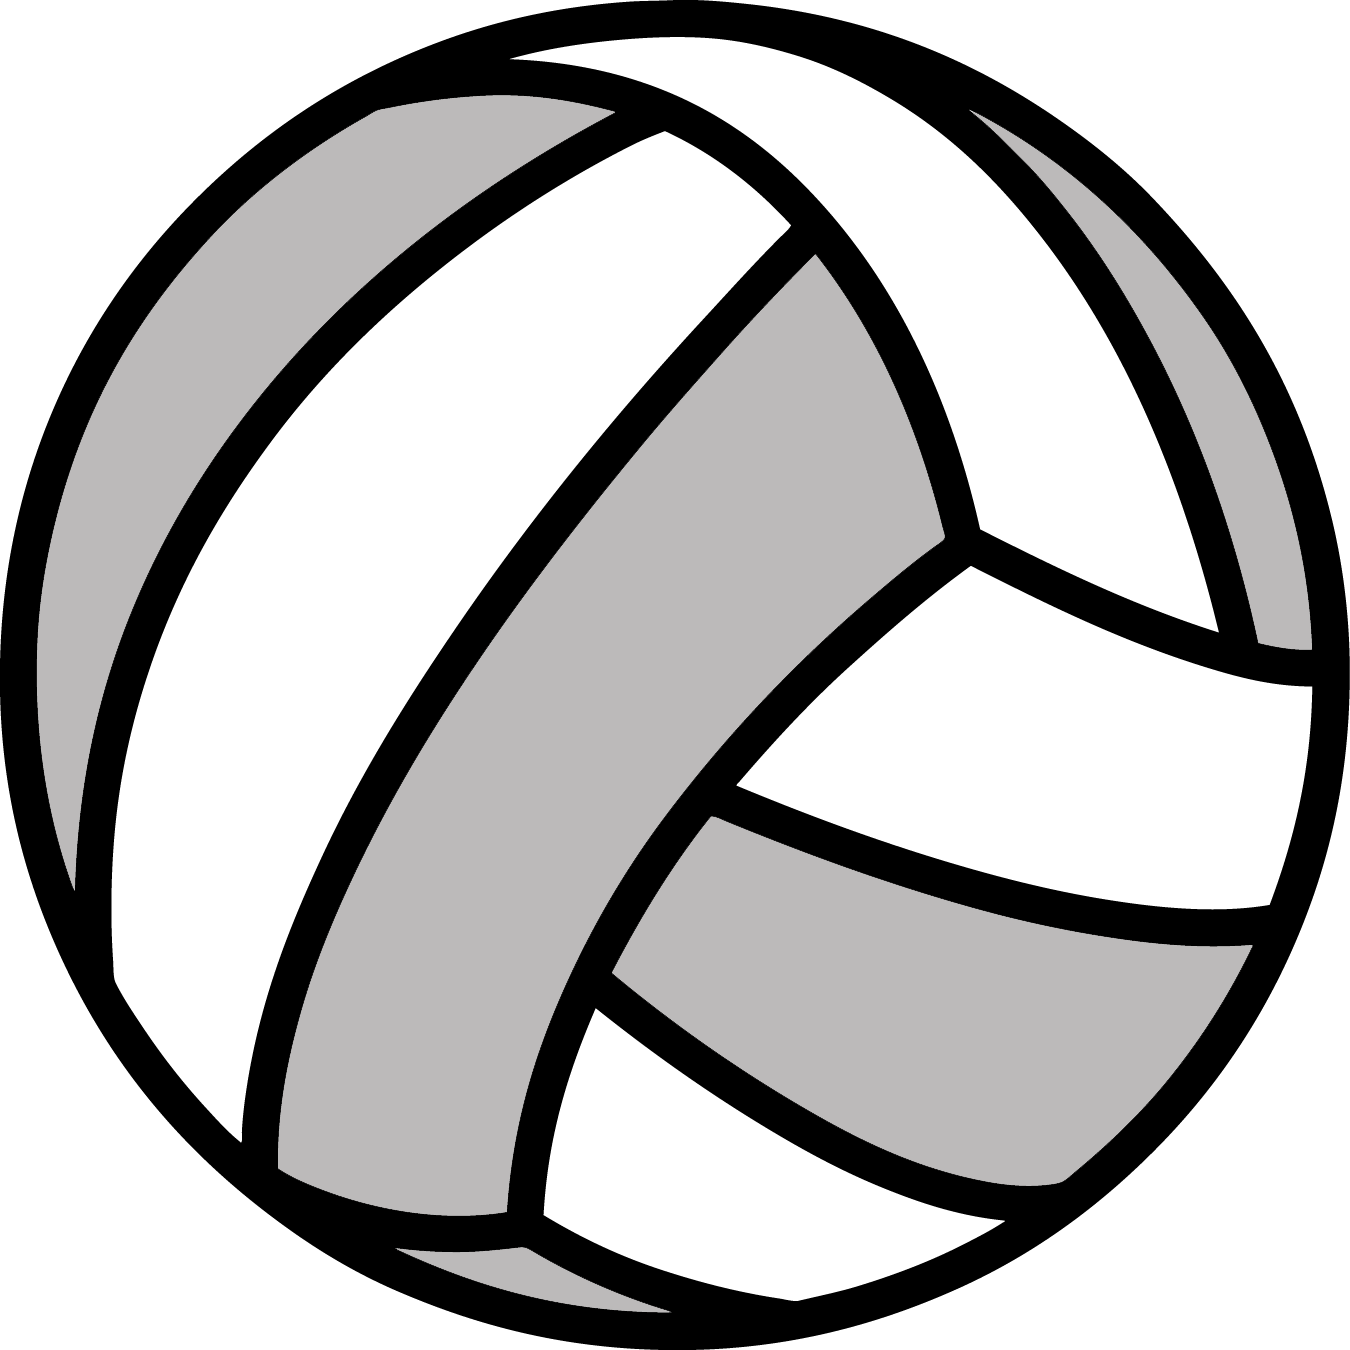 Png images transparent free. Clipart volleyball red